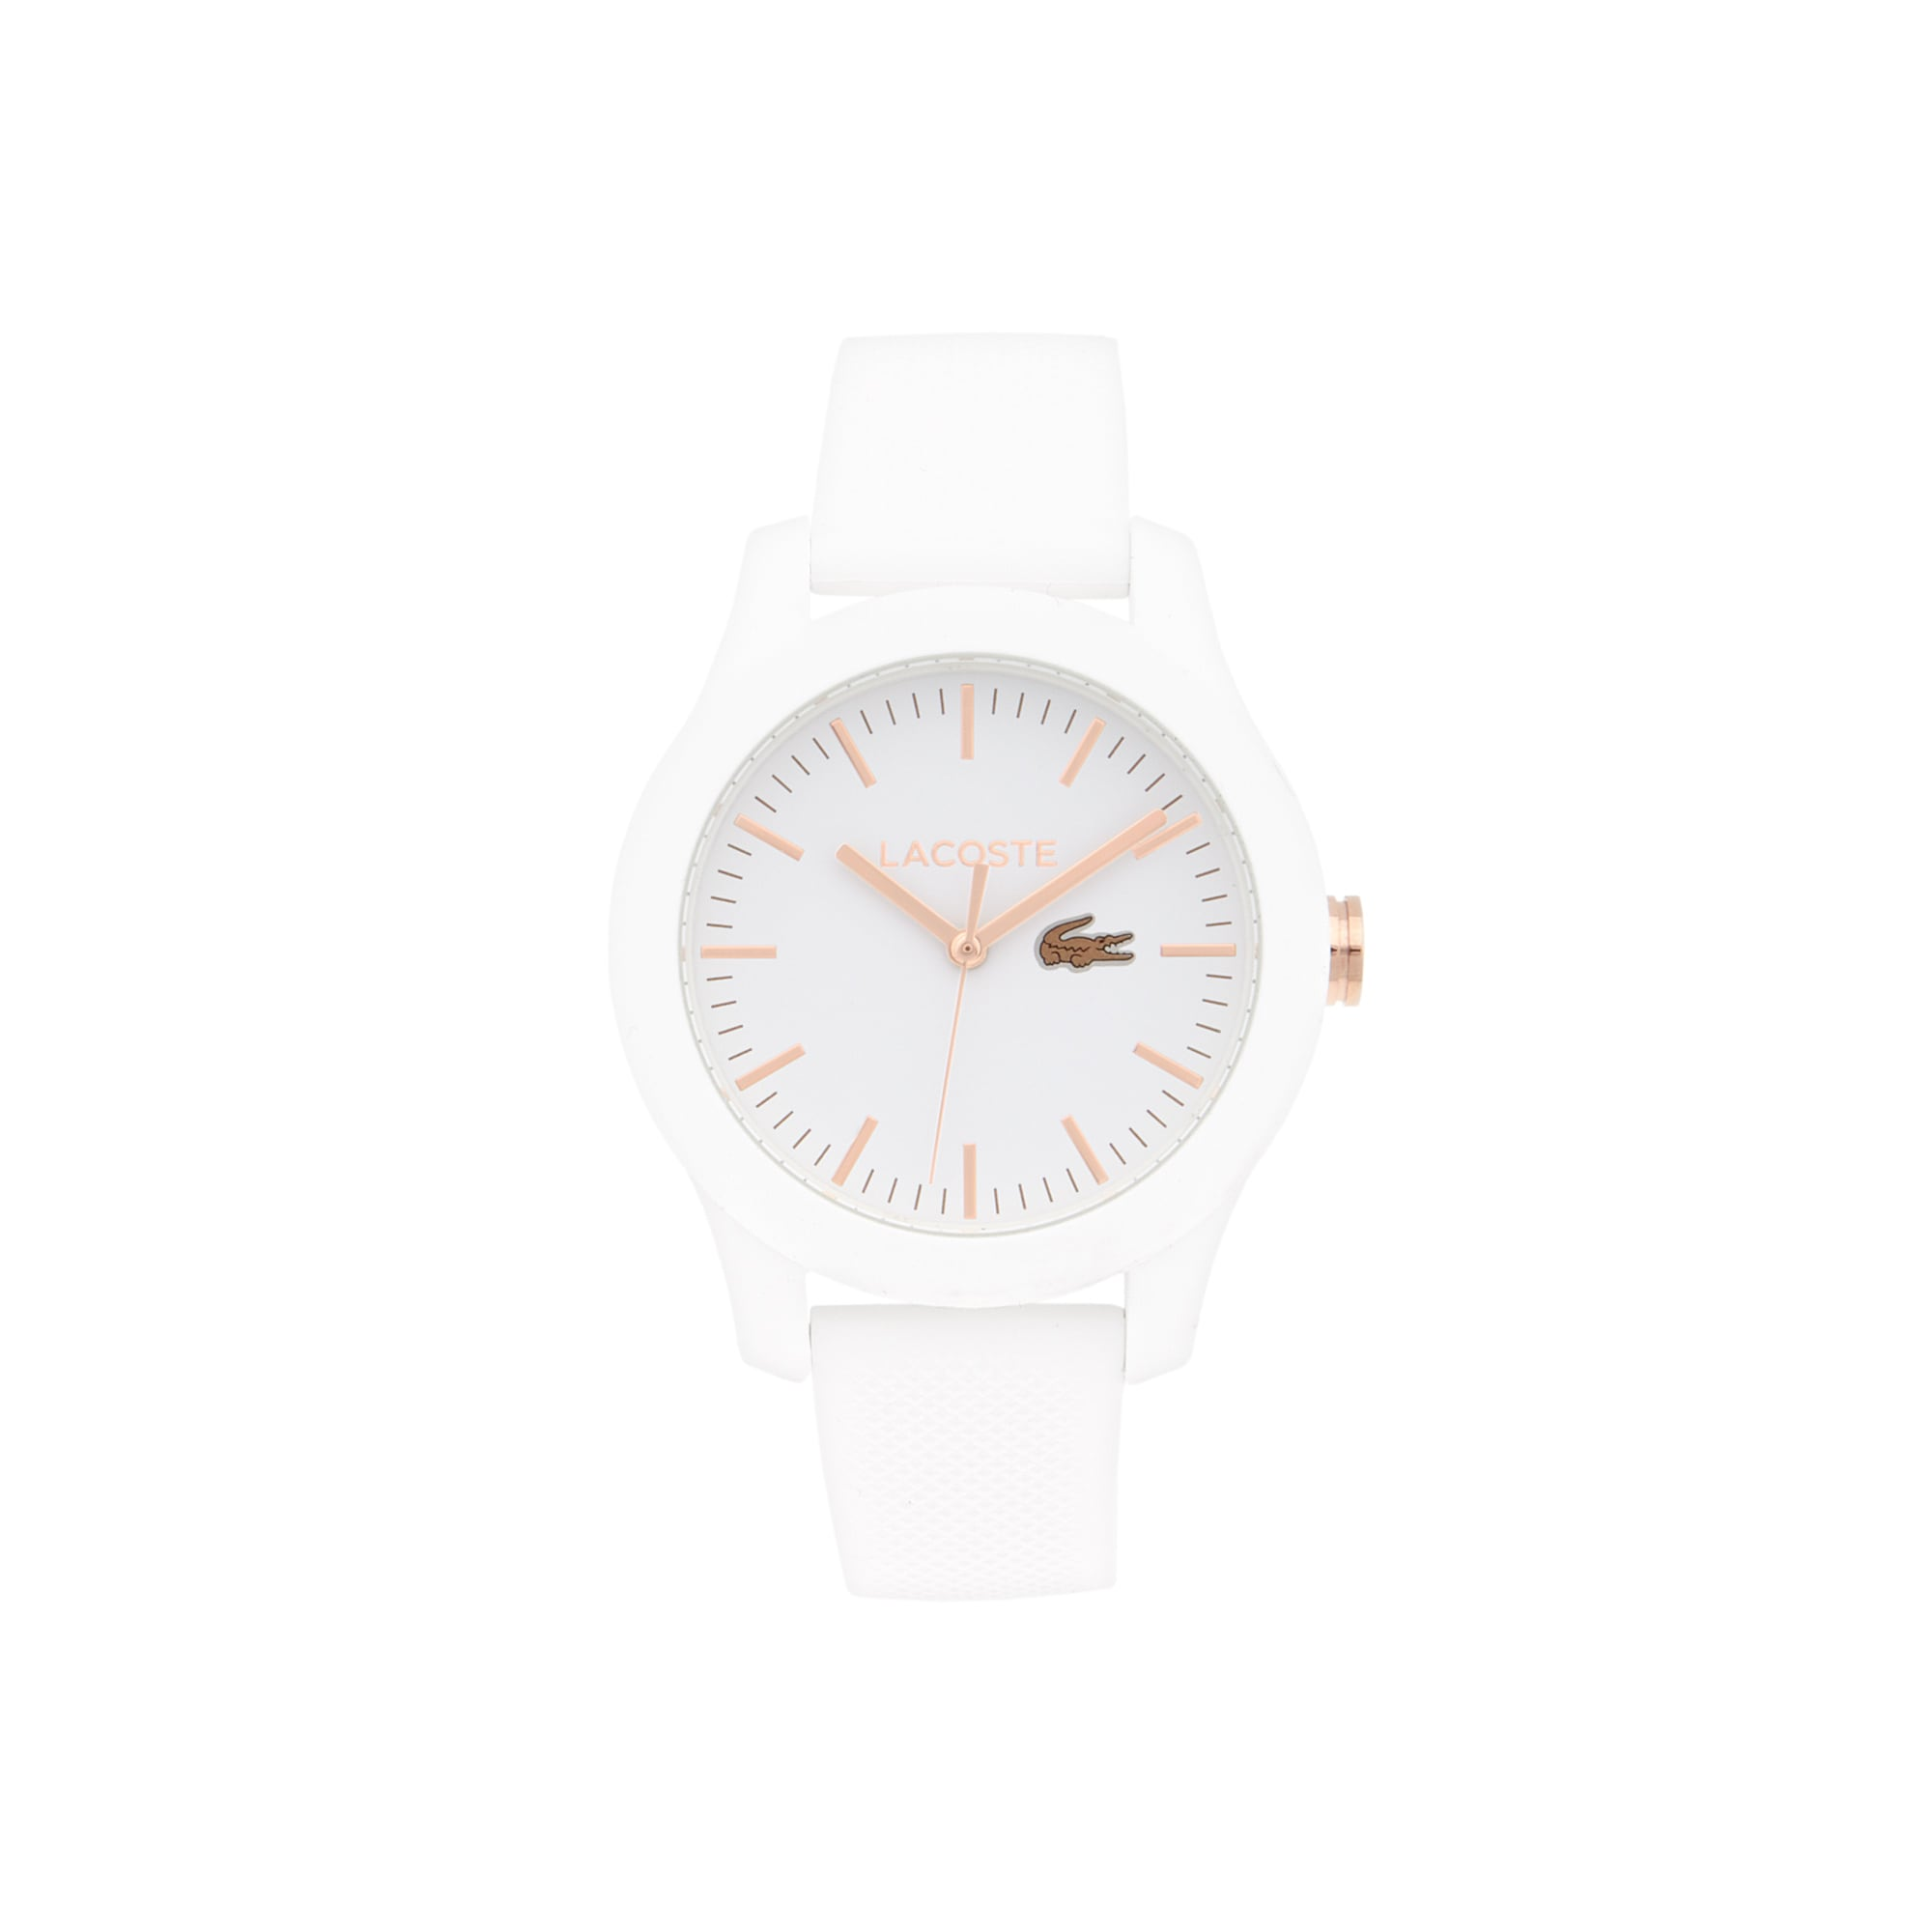 Lacoste 12.12 Watch Women white - Gold IP hands